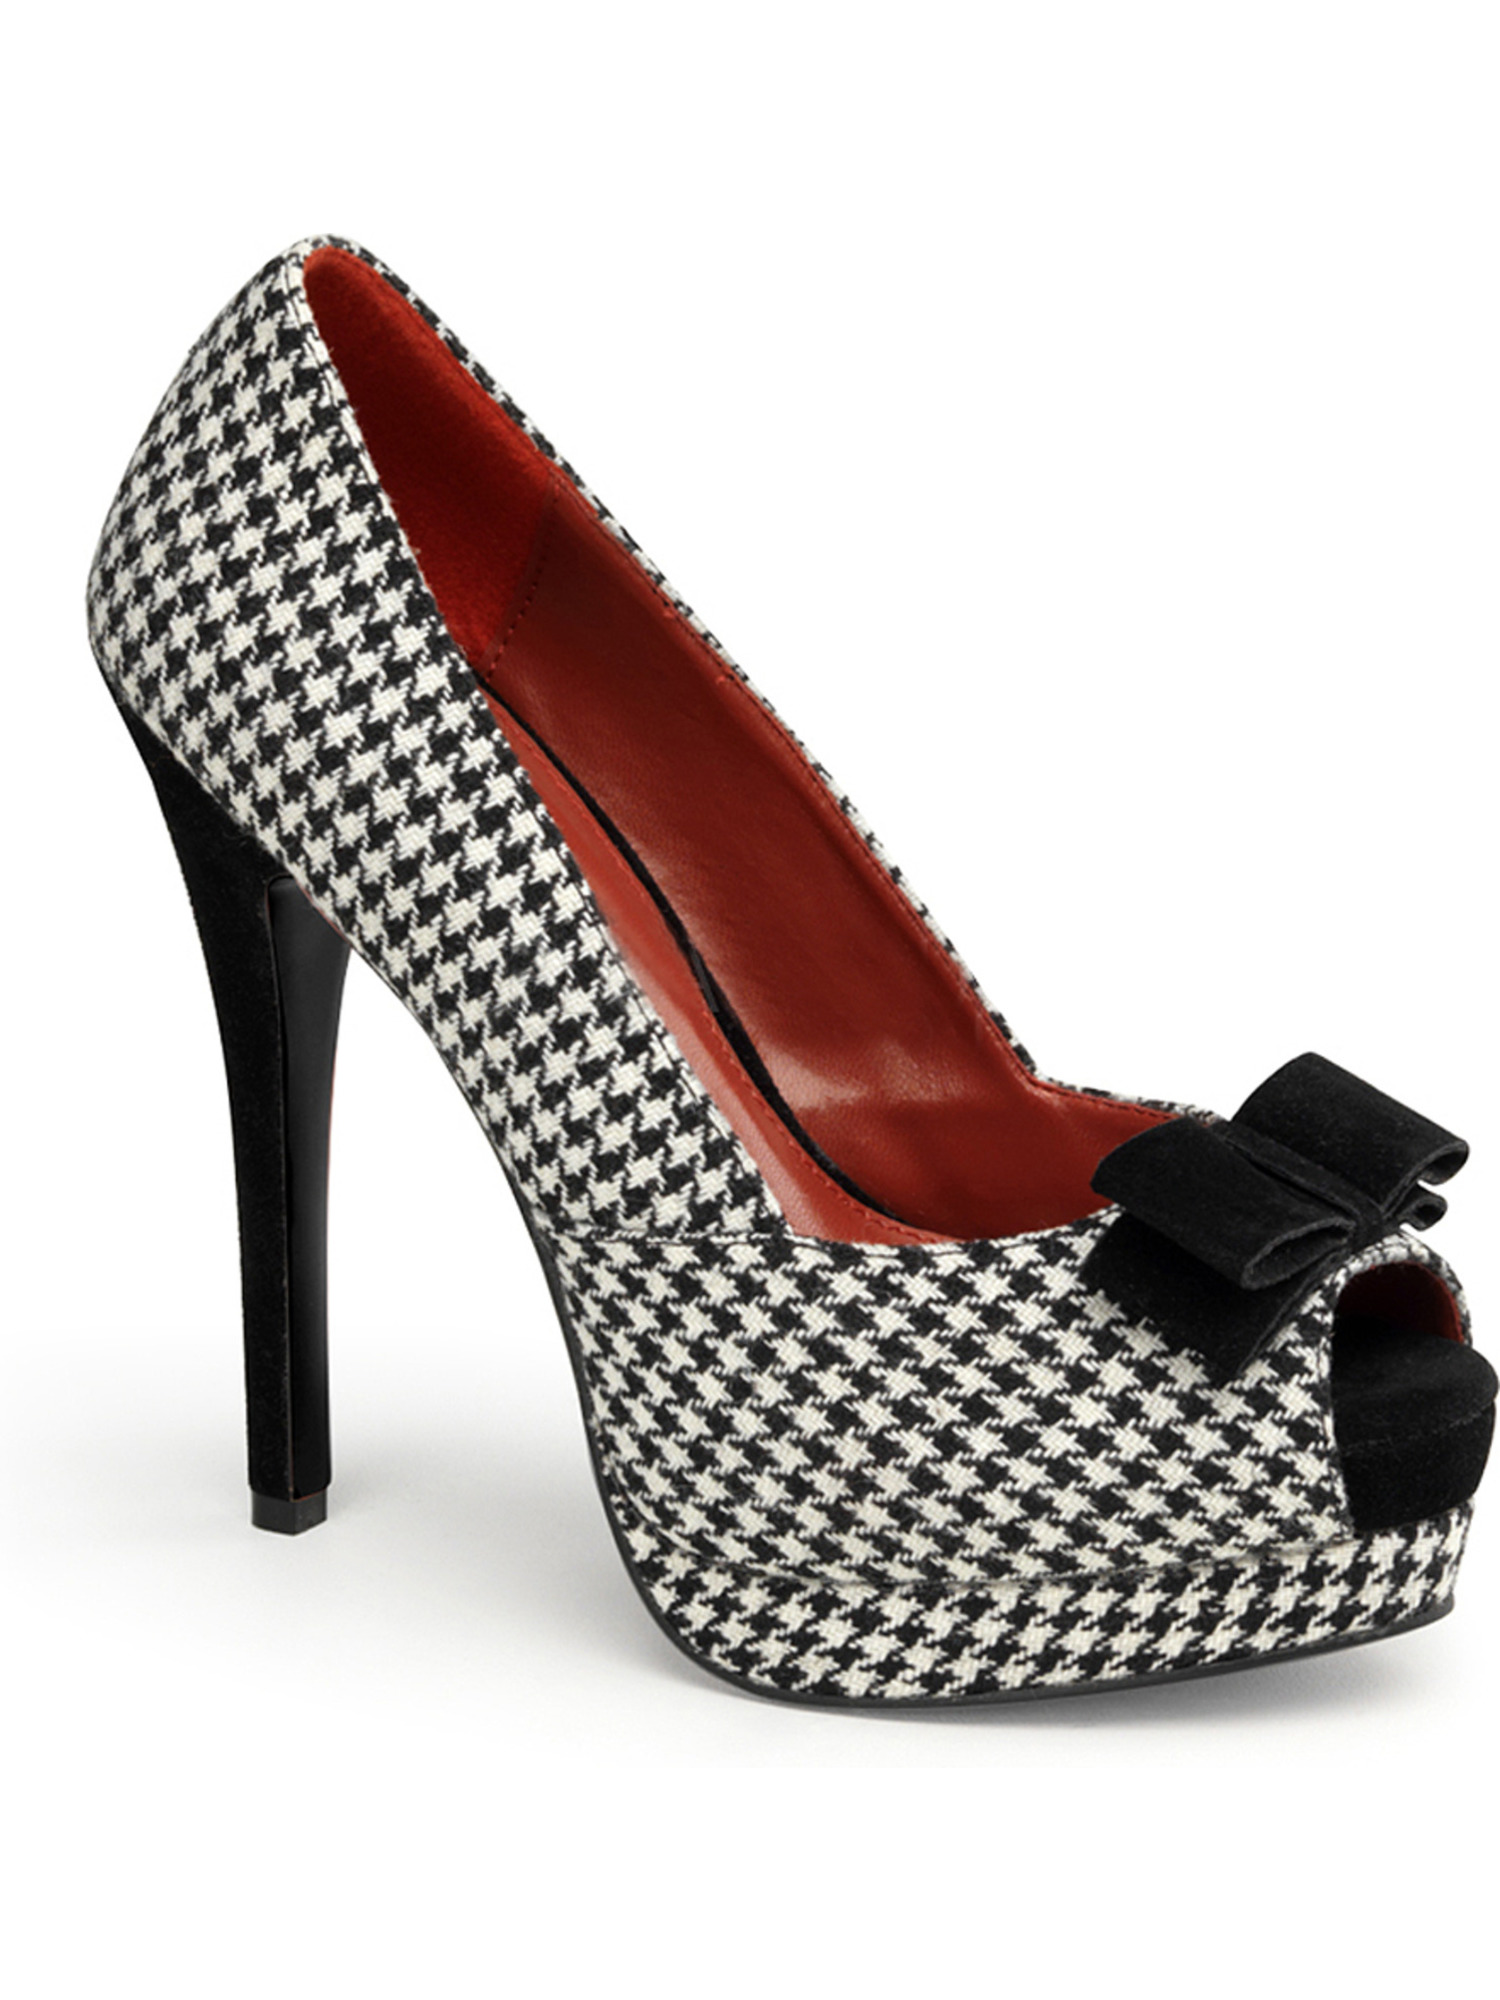 5 1/2 High Heel Pumps Peep Toe White Houndstooth Shoes Fabric Black White Toe 5f9bf9